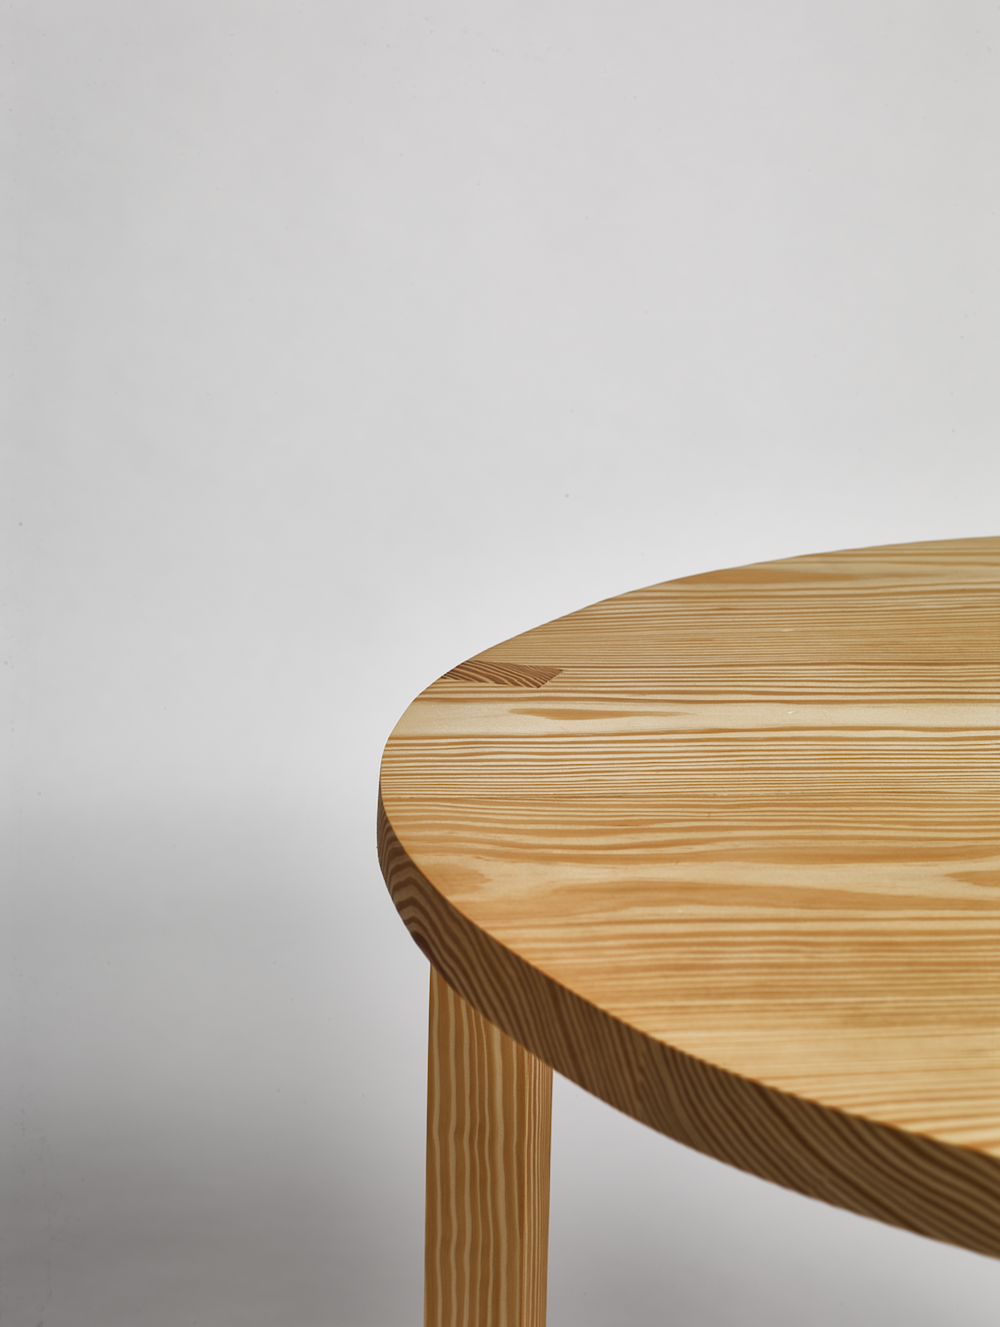 round table pine wood detail